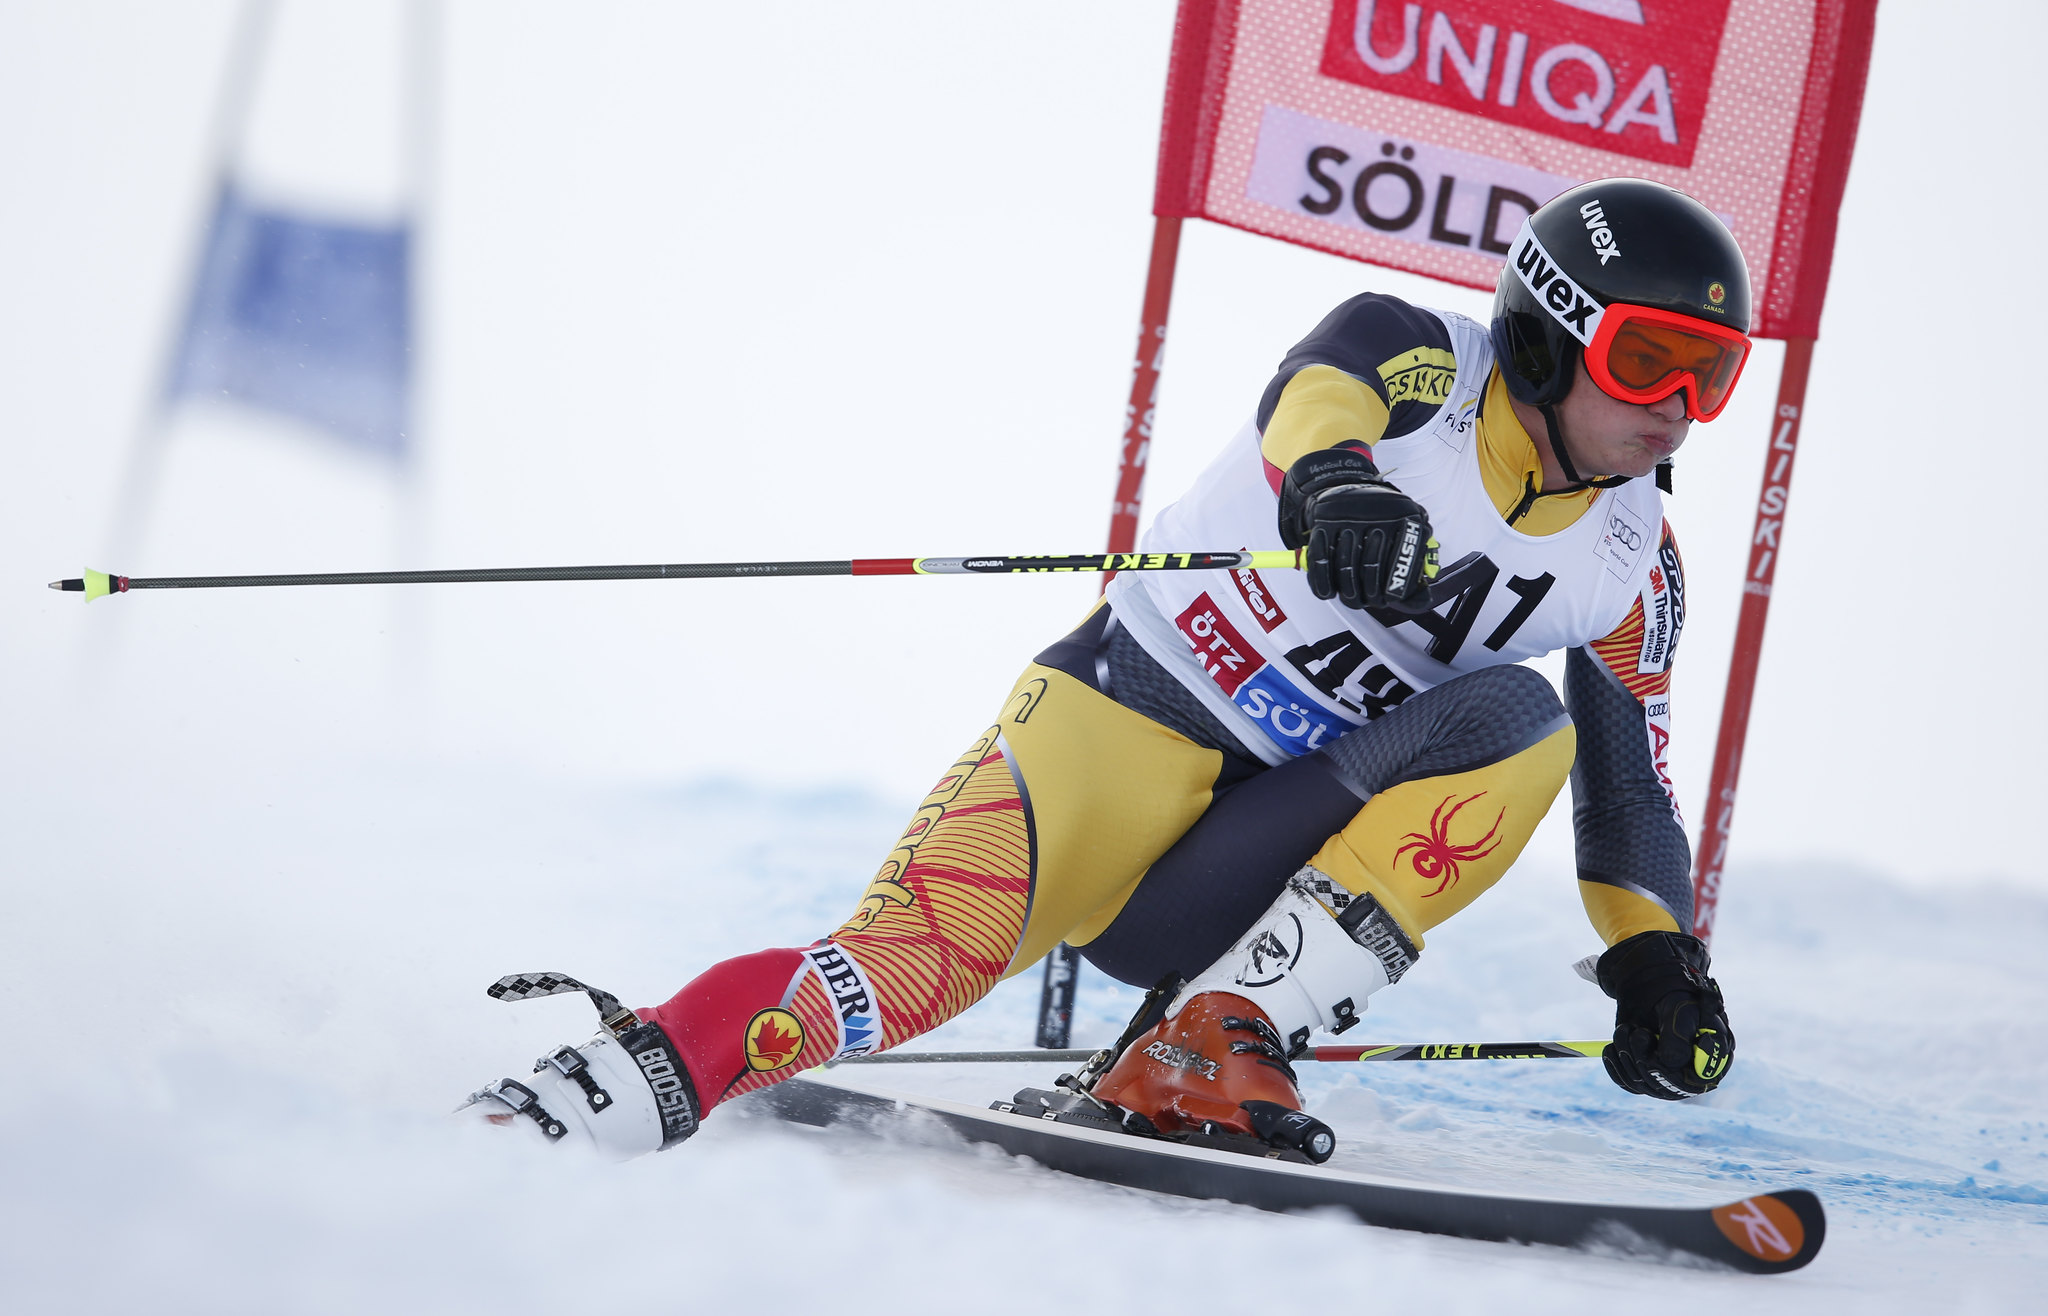 Trevor Philp at the World Cup giant slalom in Soelden, Austria.